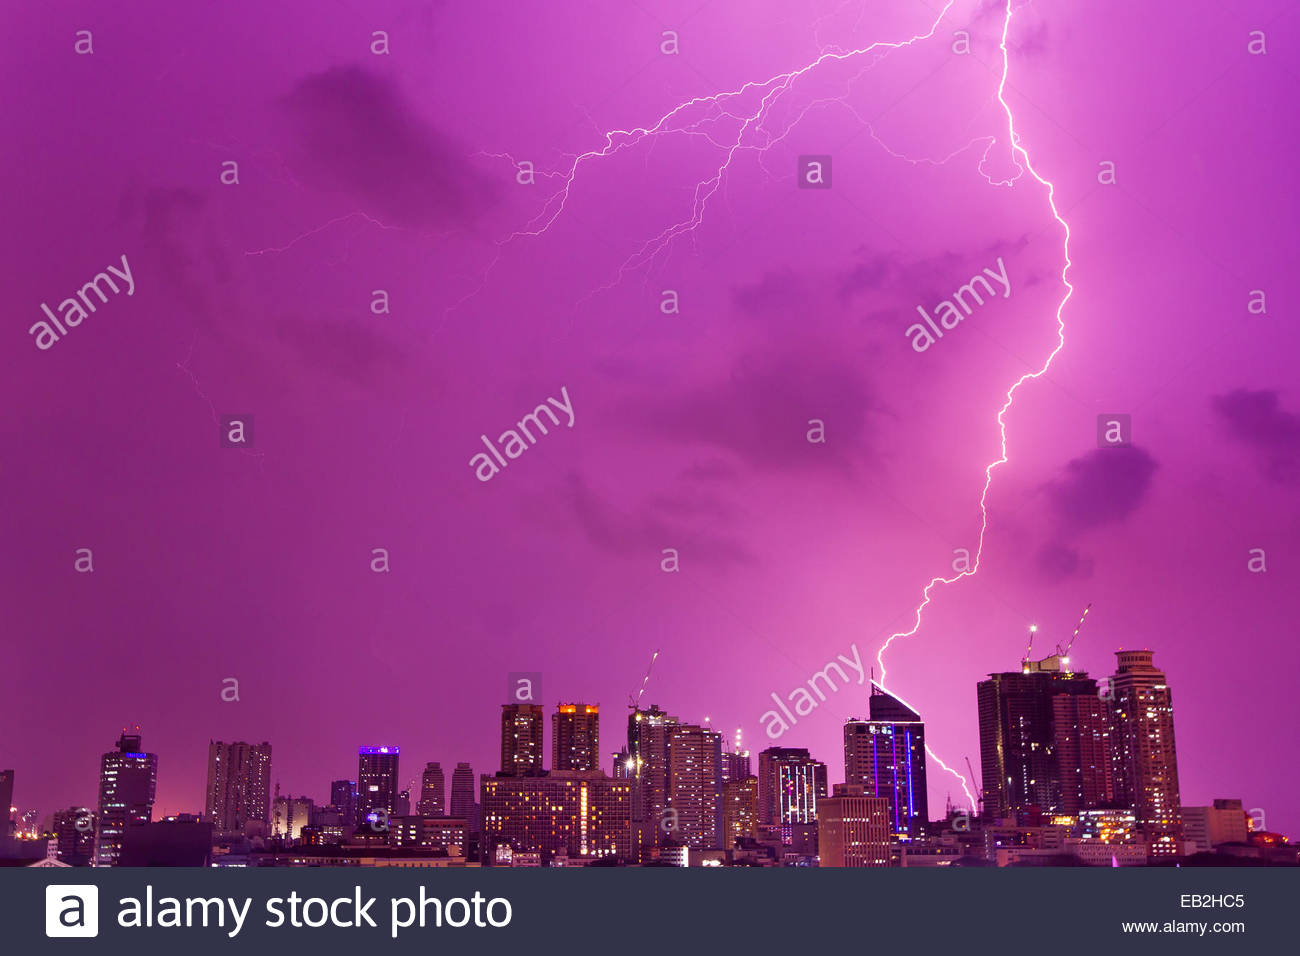 A intense thunderstorm with lightning over the skyline of Manila. - Stock Image